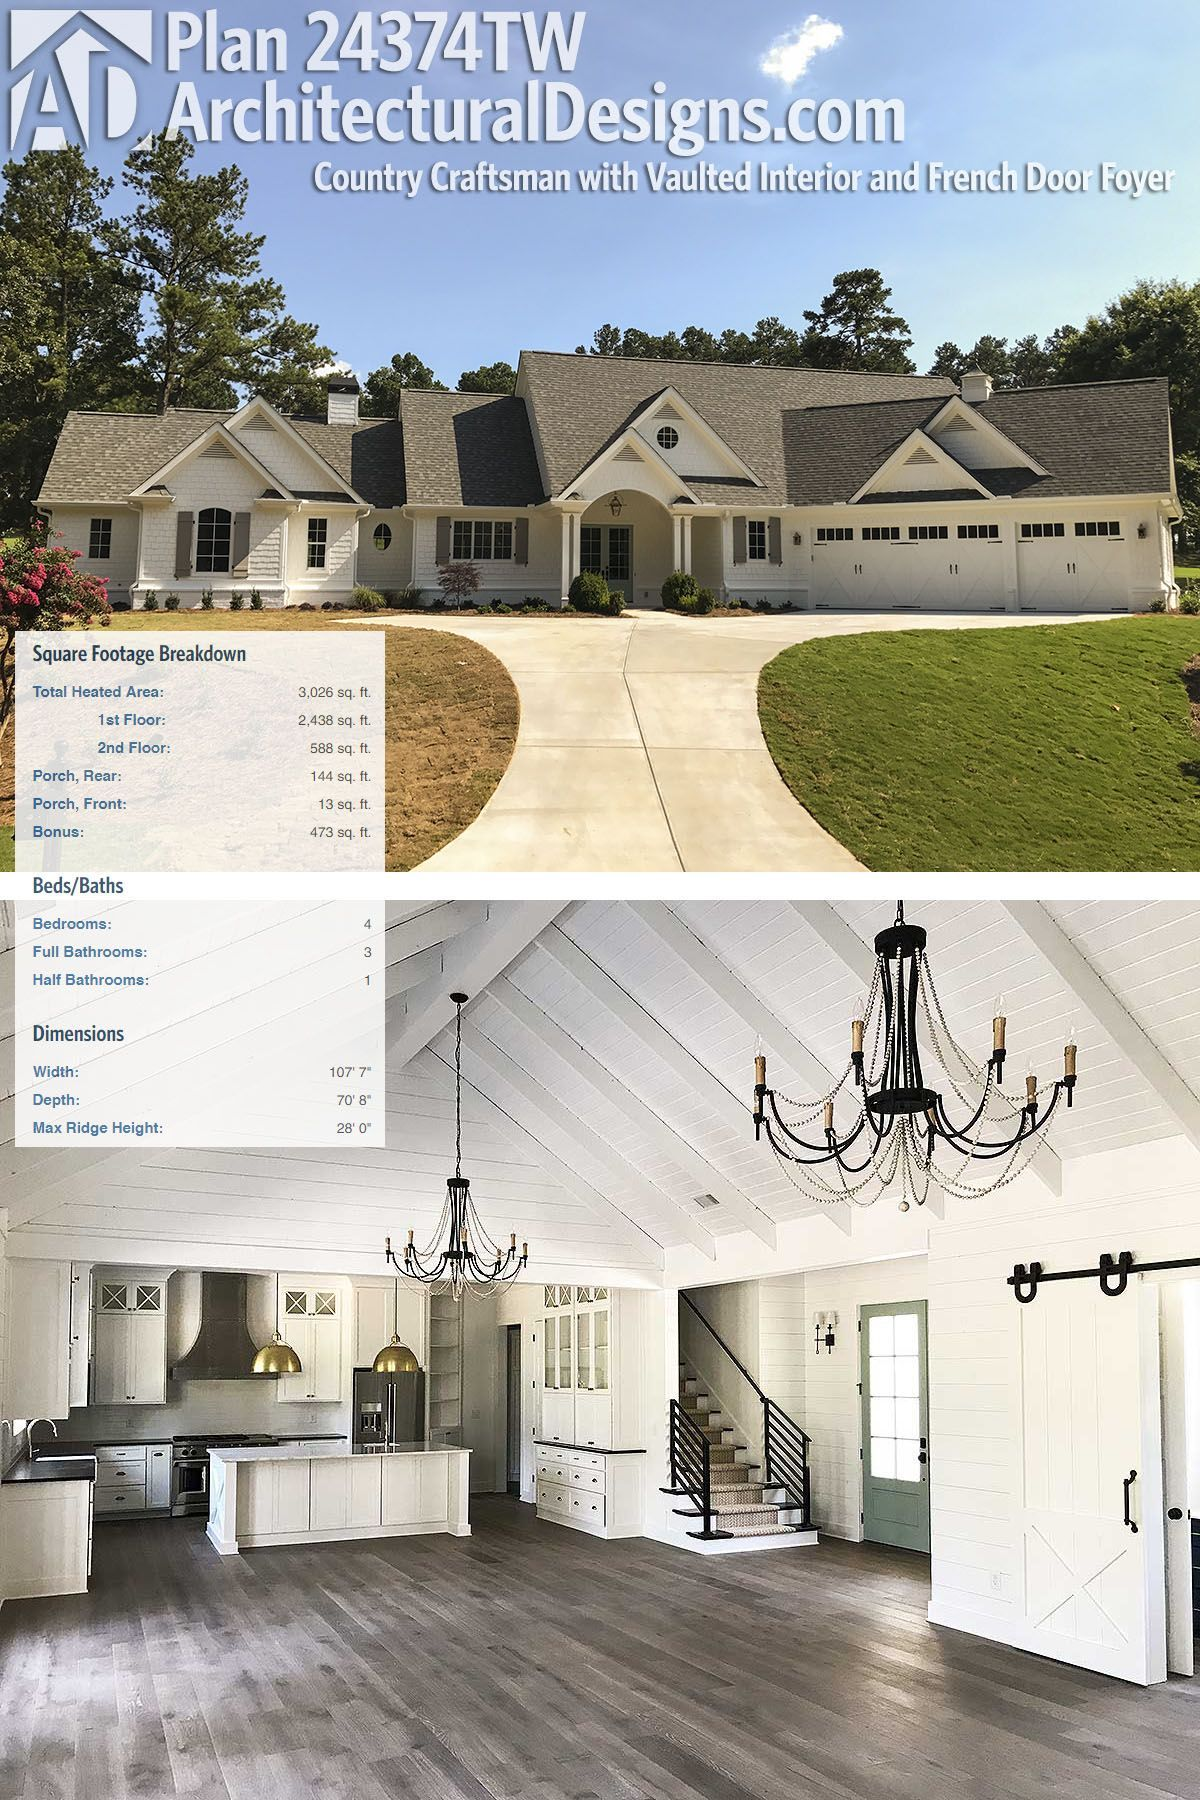 Architecture Introducing Architectural Designs Country Craftsman